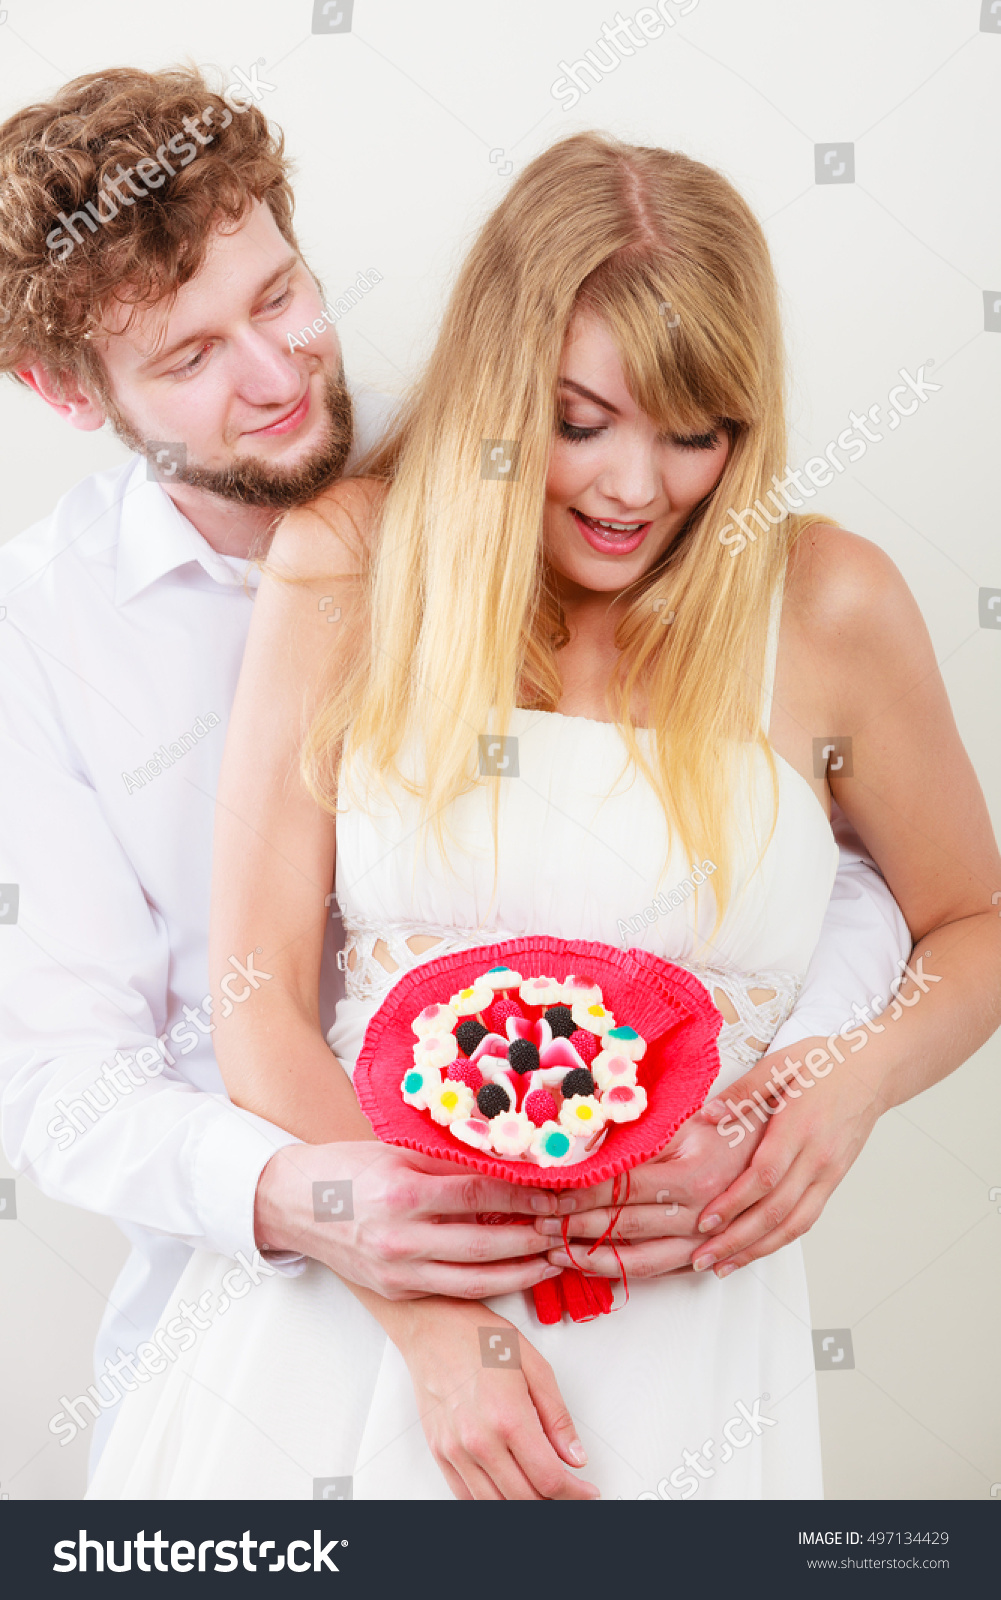 Images Of Candy Loving Great loving couple candy bunch bouquet flowers stock photo 497134429